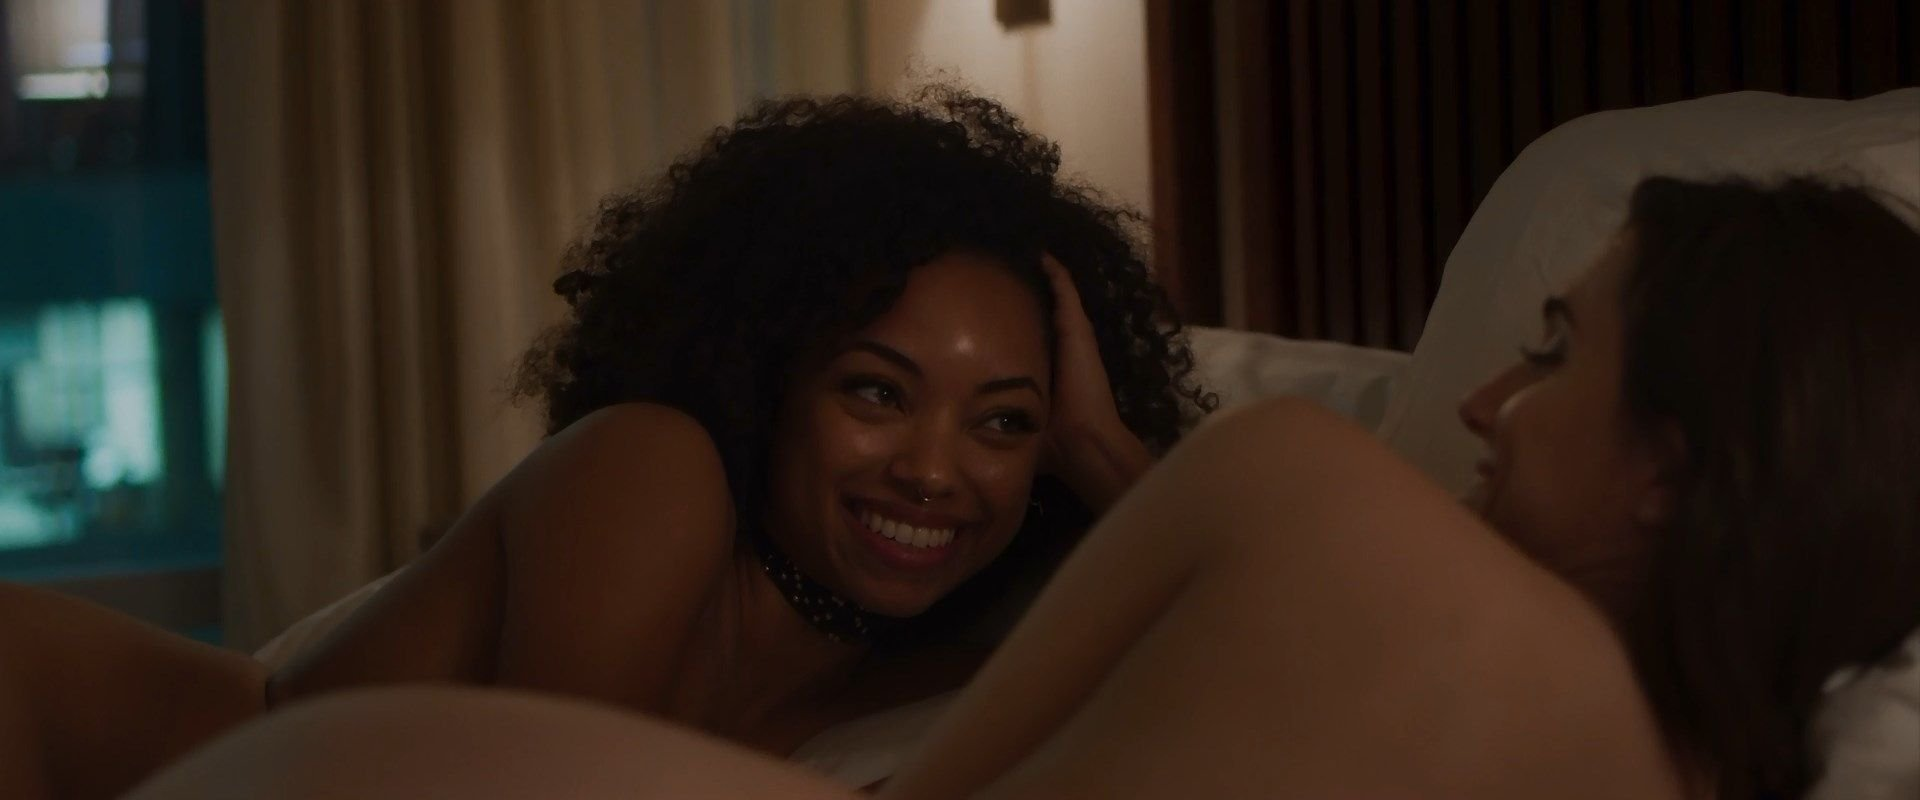 Allison Williams Porn logan browning, allison williams nude – the perfection (12